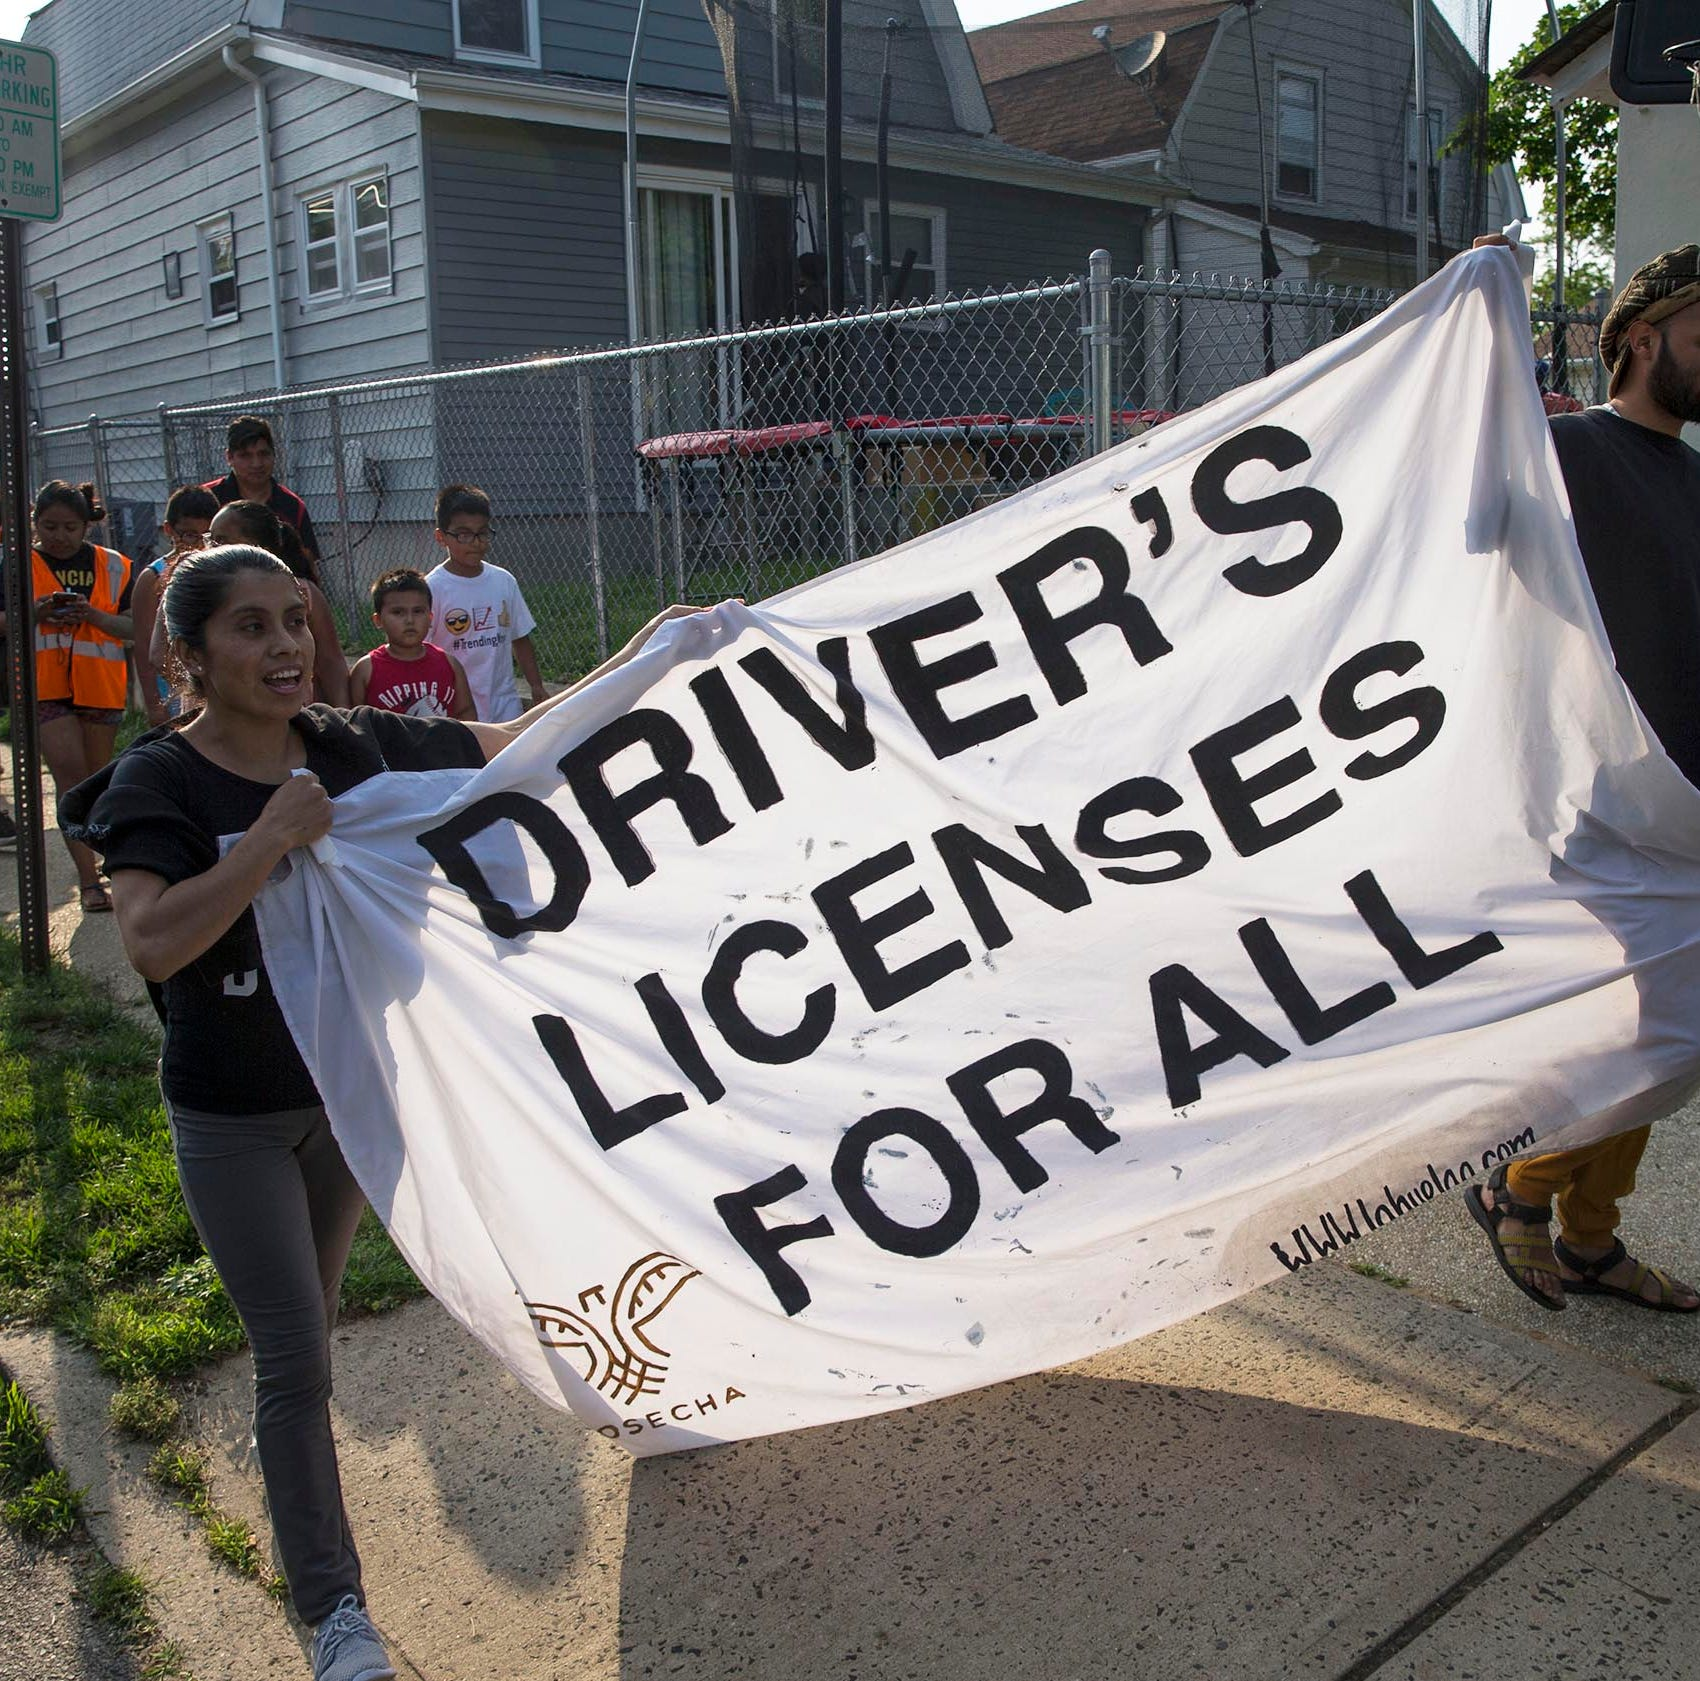 Alessandra Biaggi: Driver's licenses for undocumented New Yorkers can boost safety for all